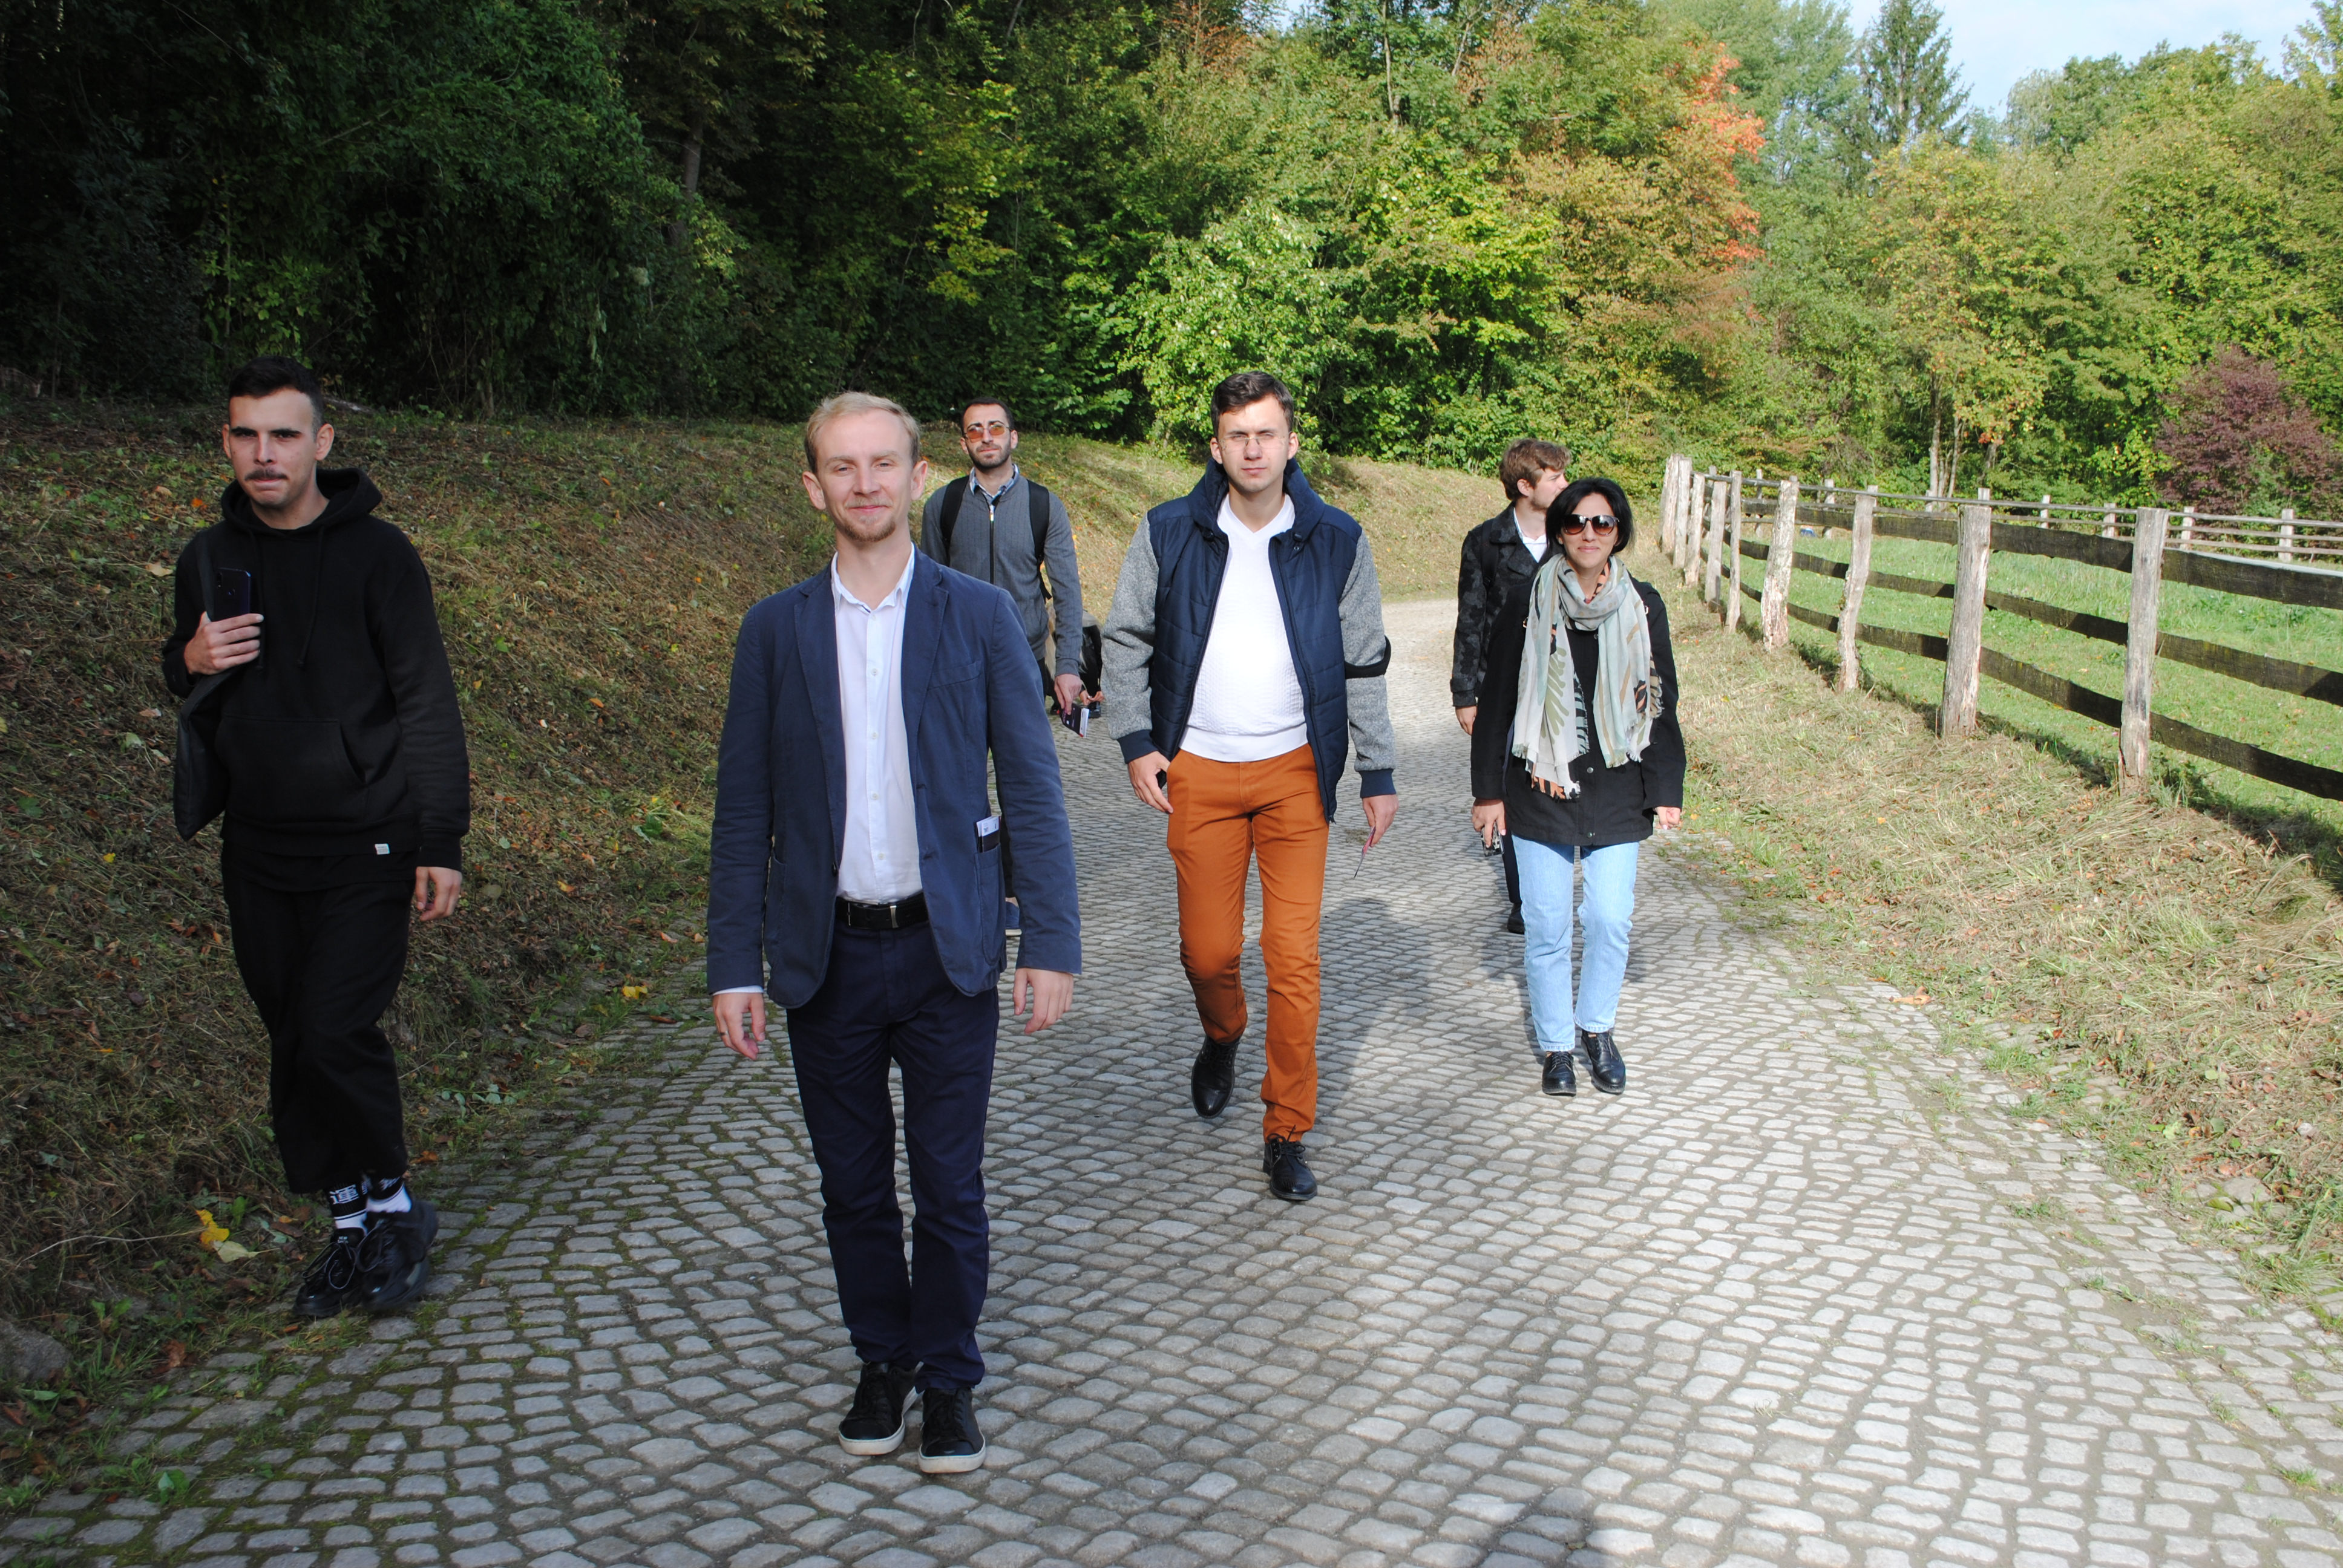 Open-Air museum Detmold: Walk around the territory